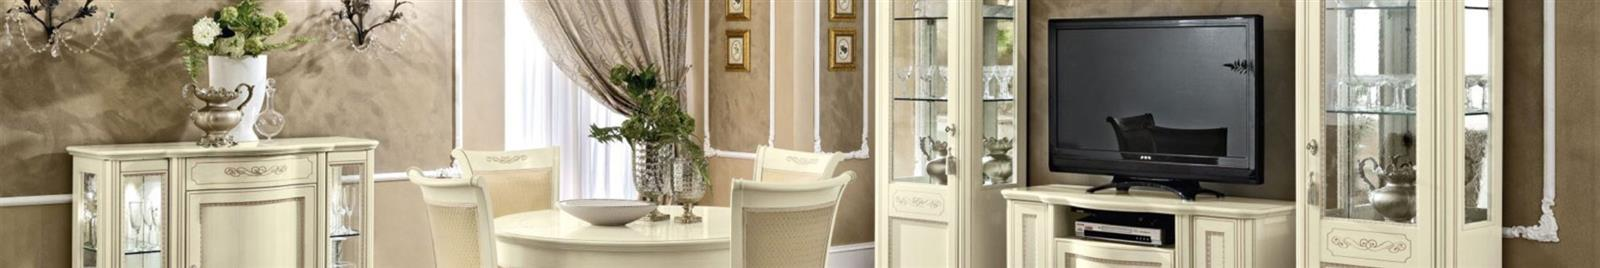 Torriani Ivory - Classic Italian Living Room